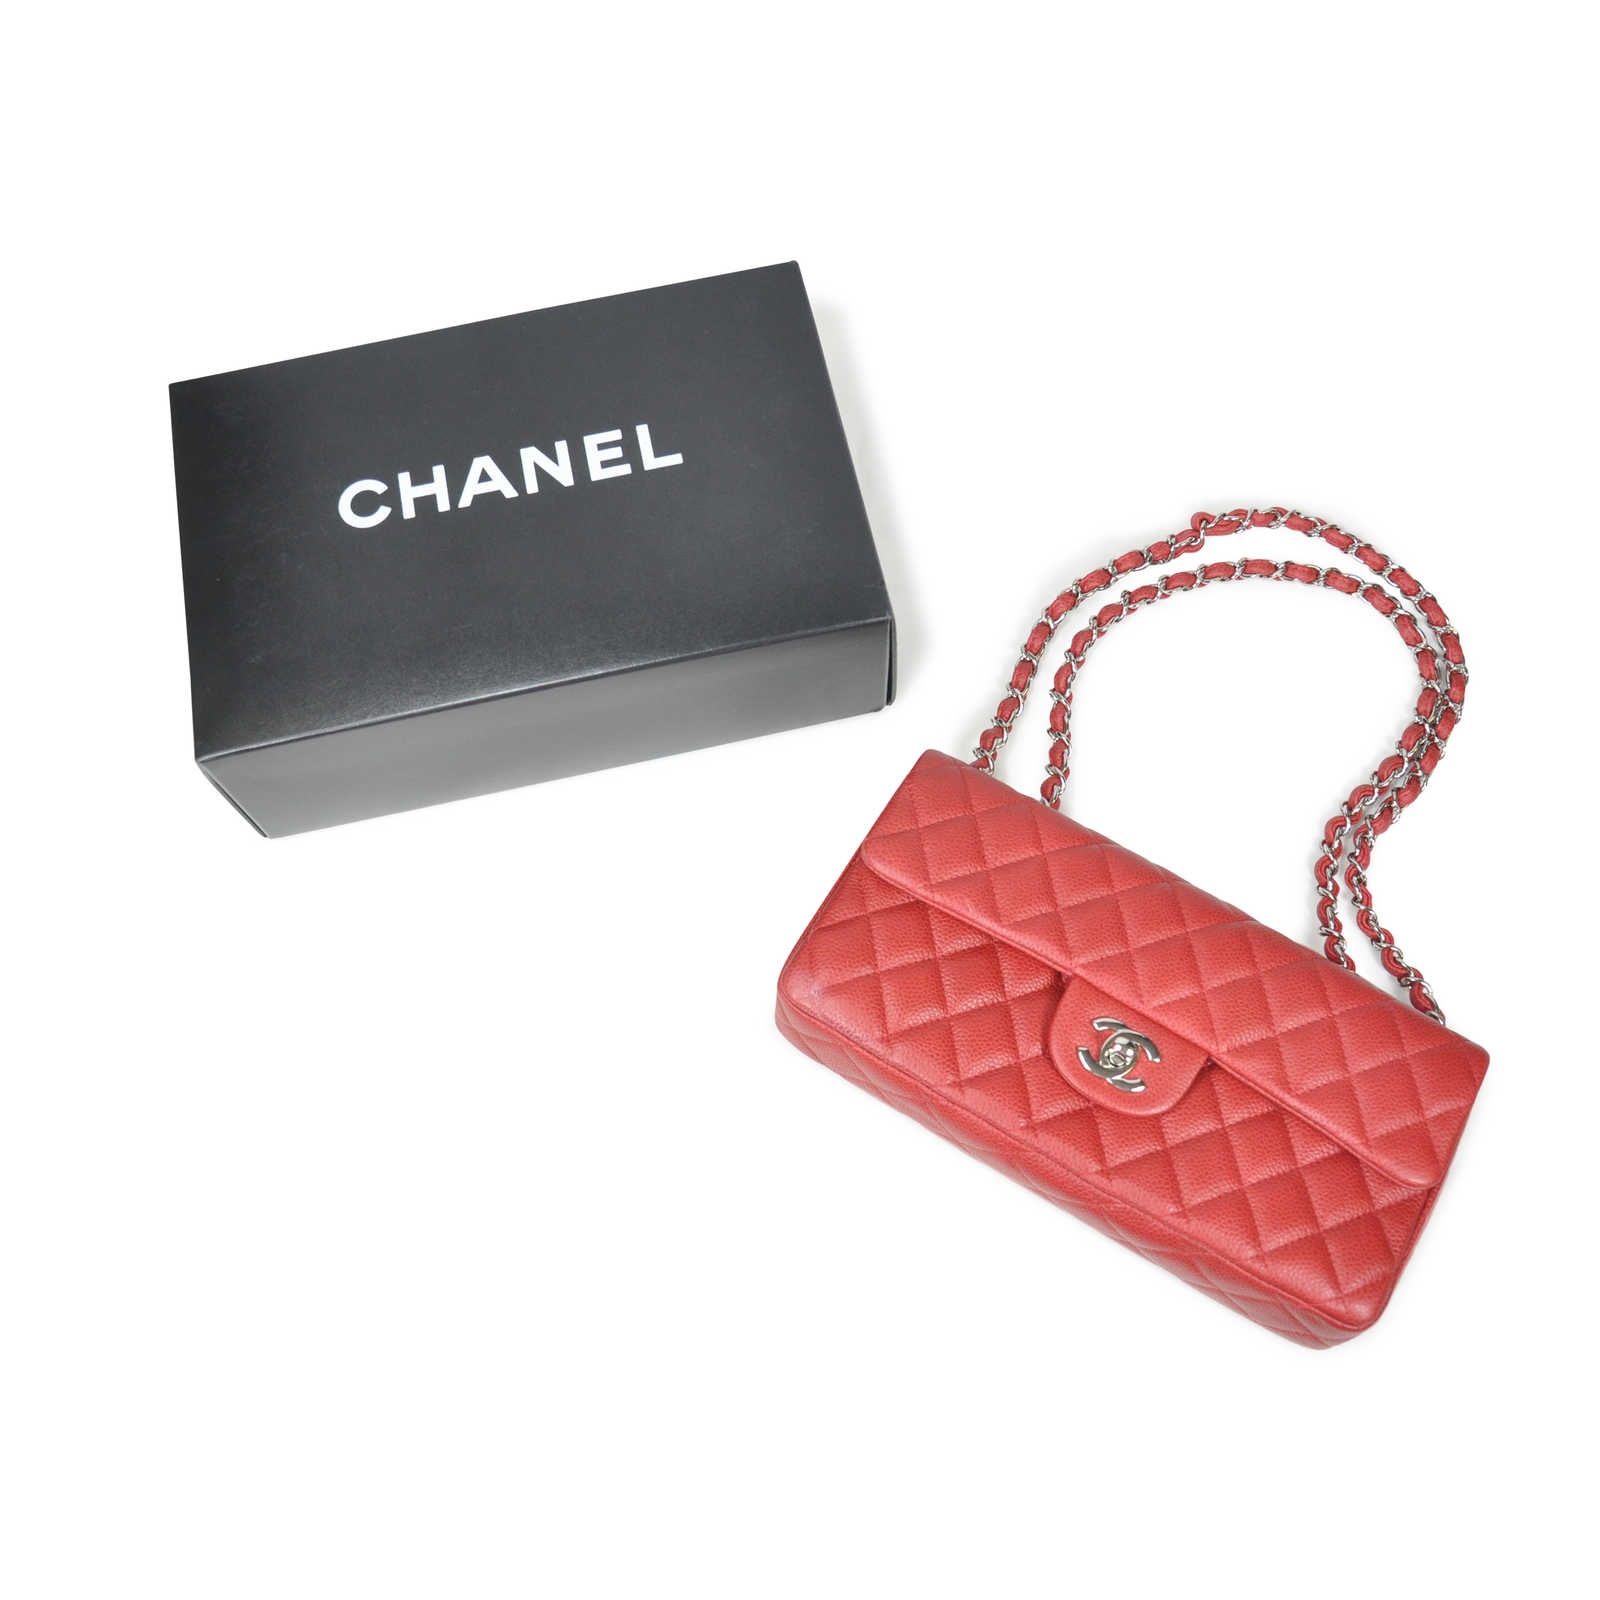 82fb318c7cfdd7 ... Authentic Second Hand Chanel East West Flap Bag (PSS-020-00016) -